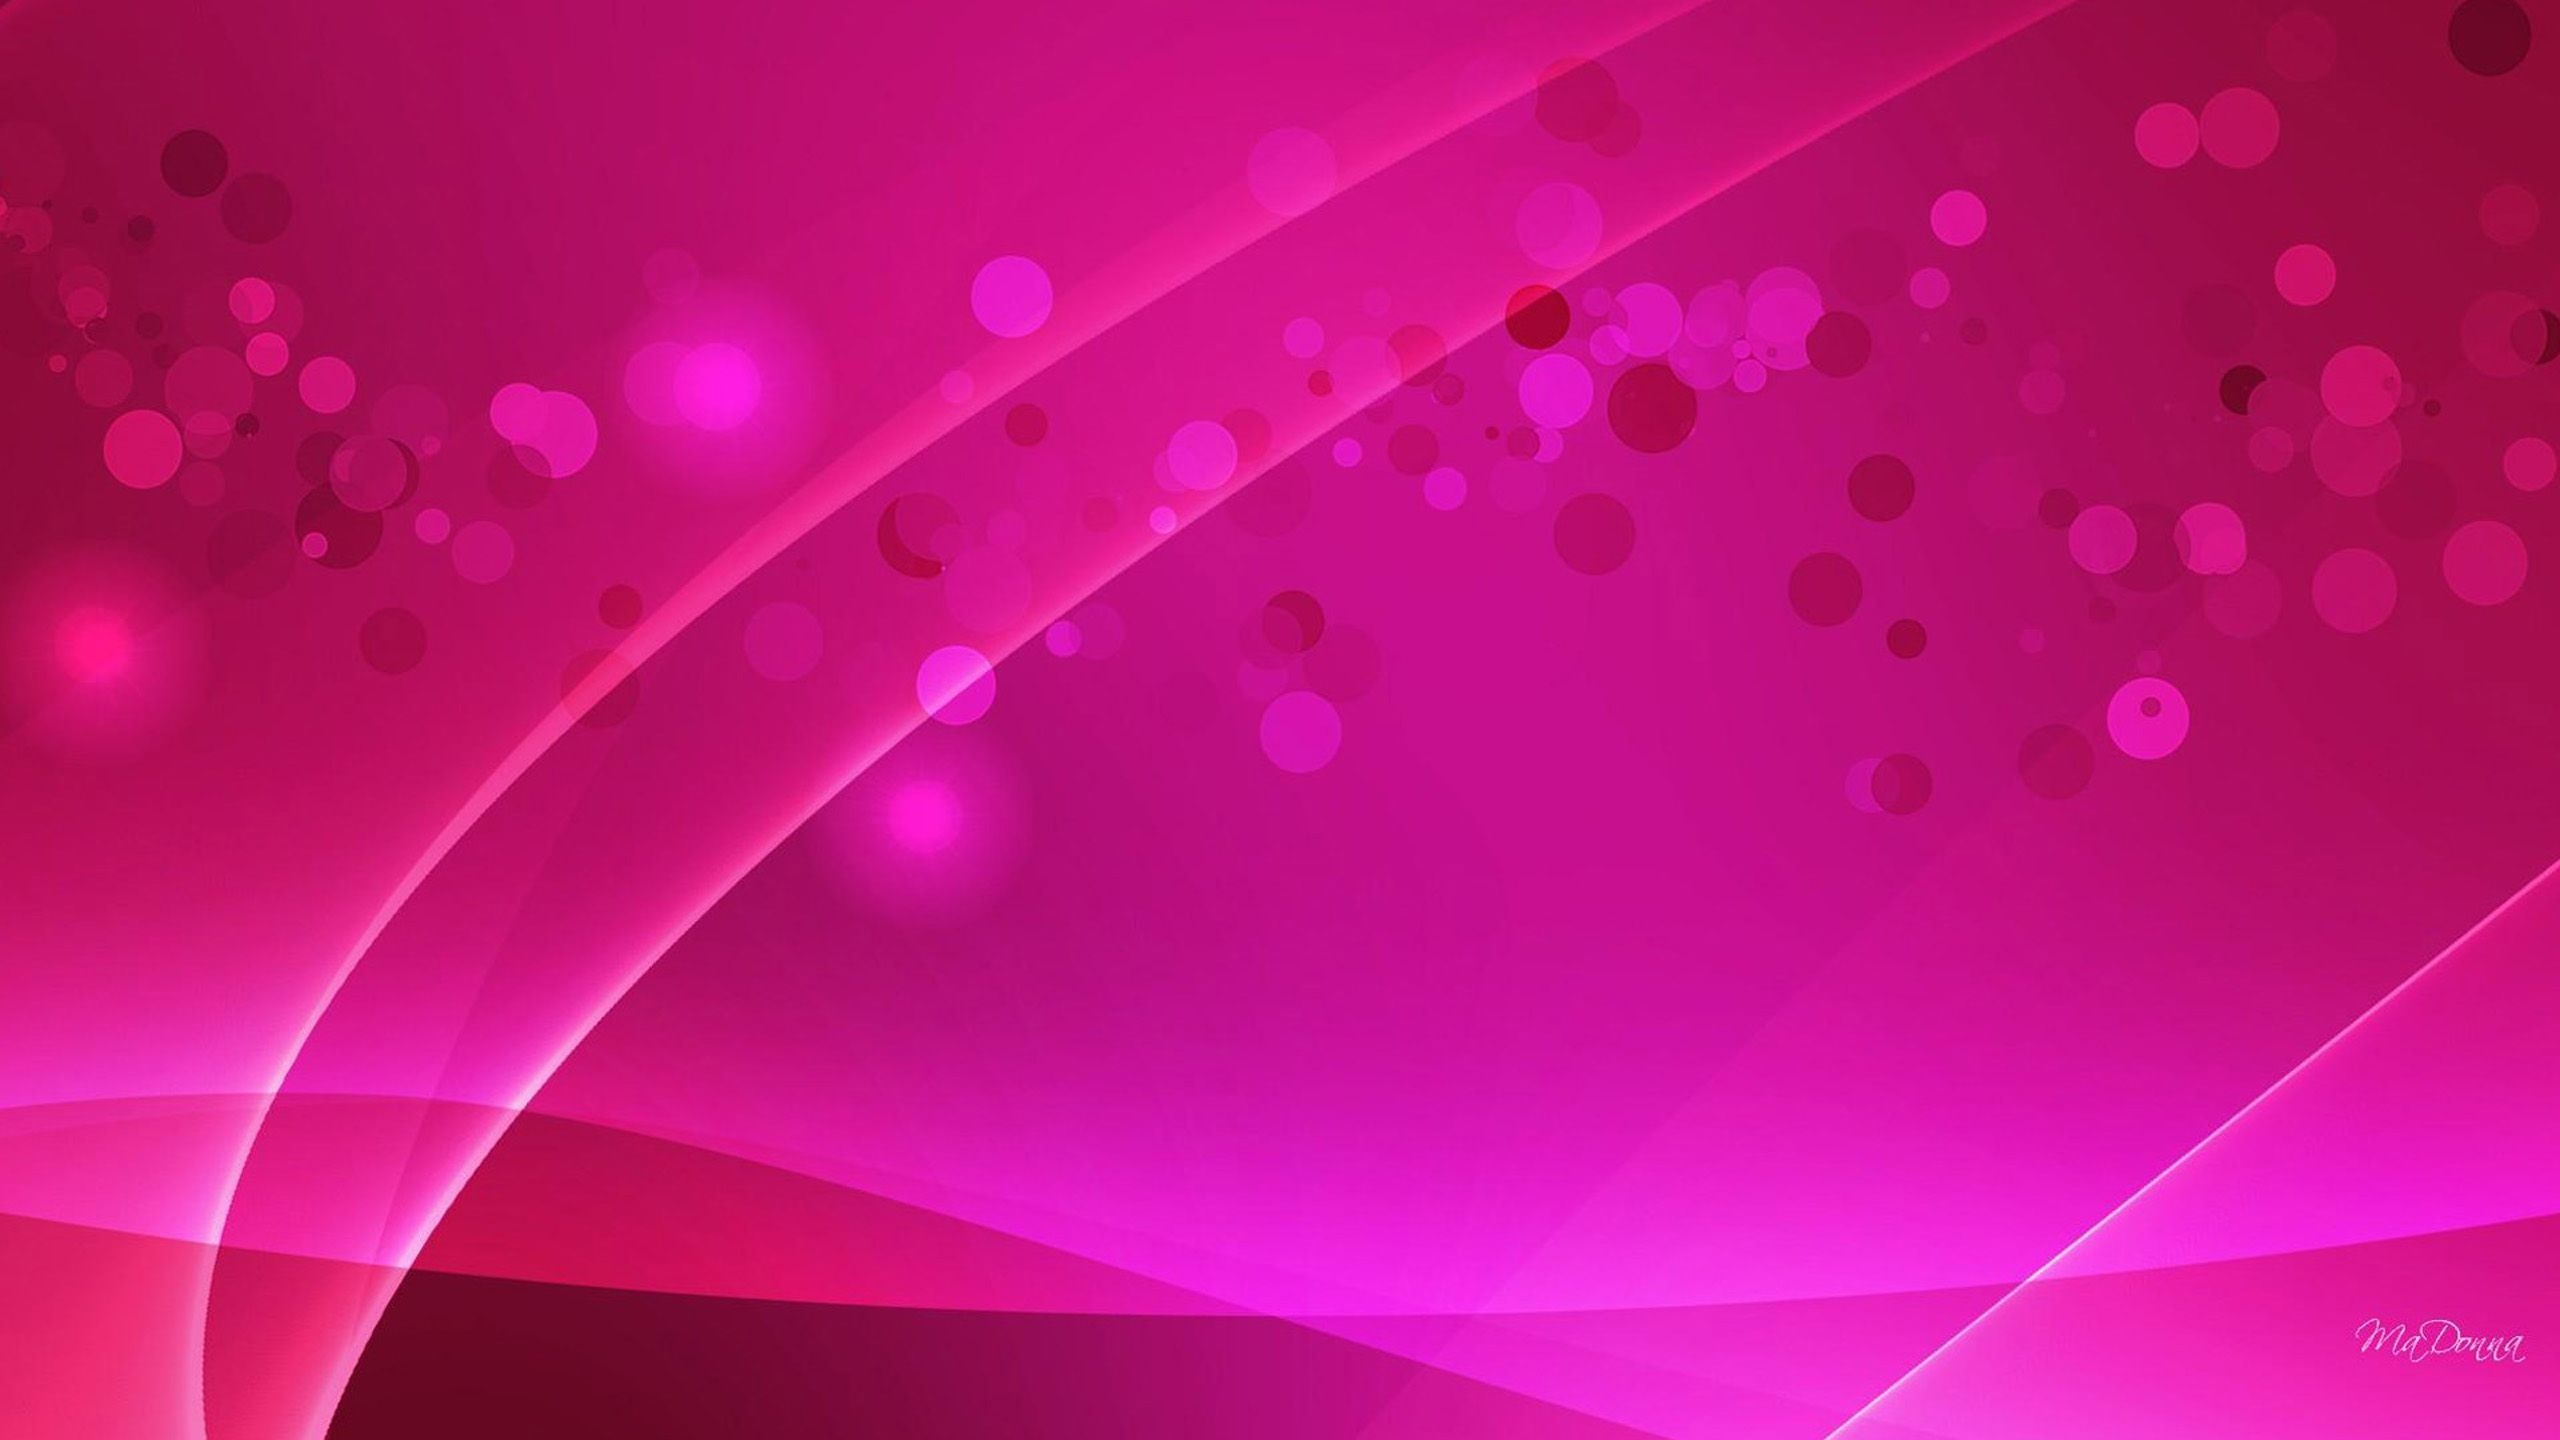 2560x1440 abstract wallpaper pink Group with 53 items